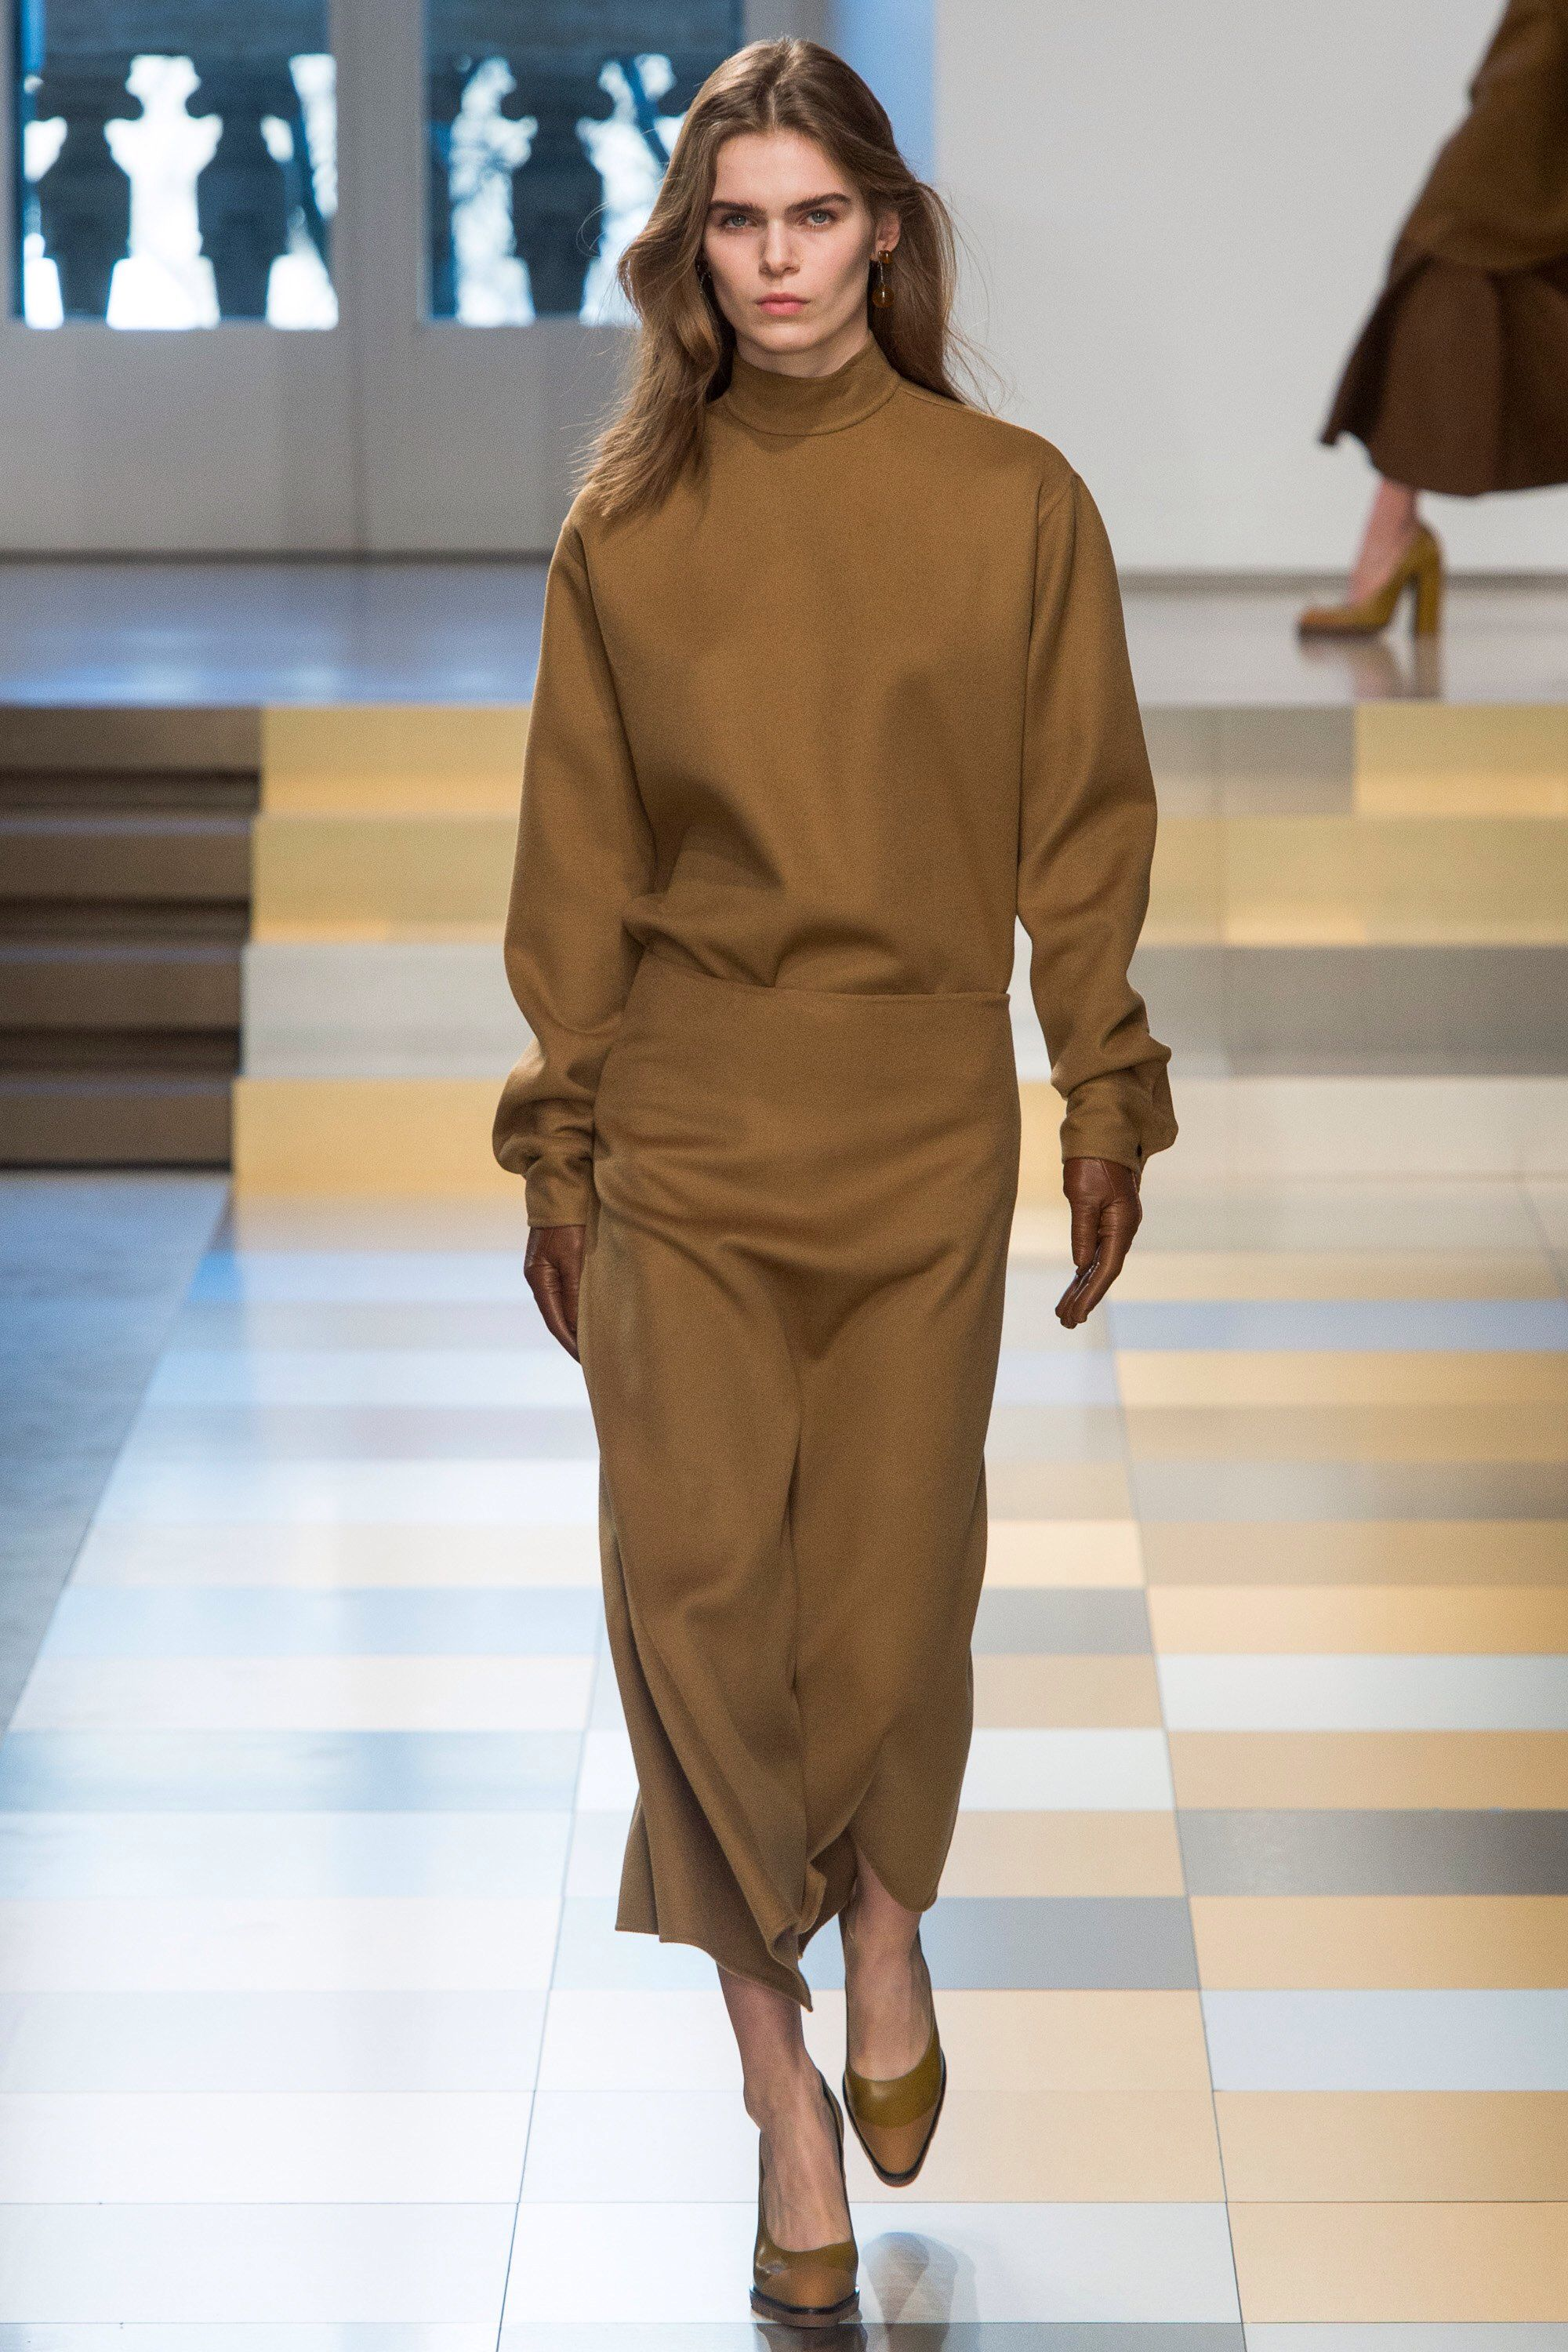 ... Jil Sander Collections Fall Winter the fashion accessories and outfits  seen on Milano runaways. Fashion 2017, Runway Fashion, Fashion Trends, ... a1d928a82a58